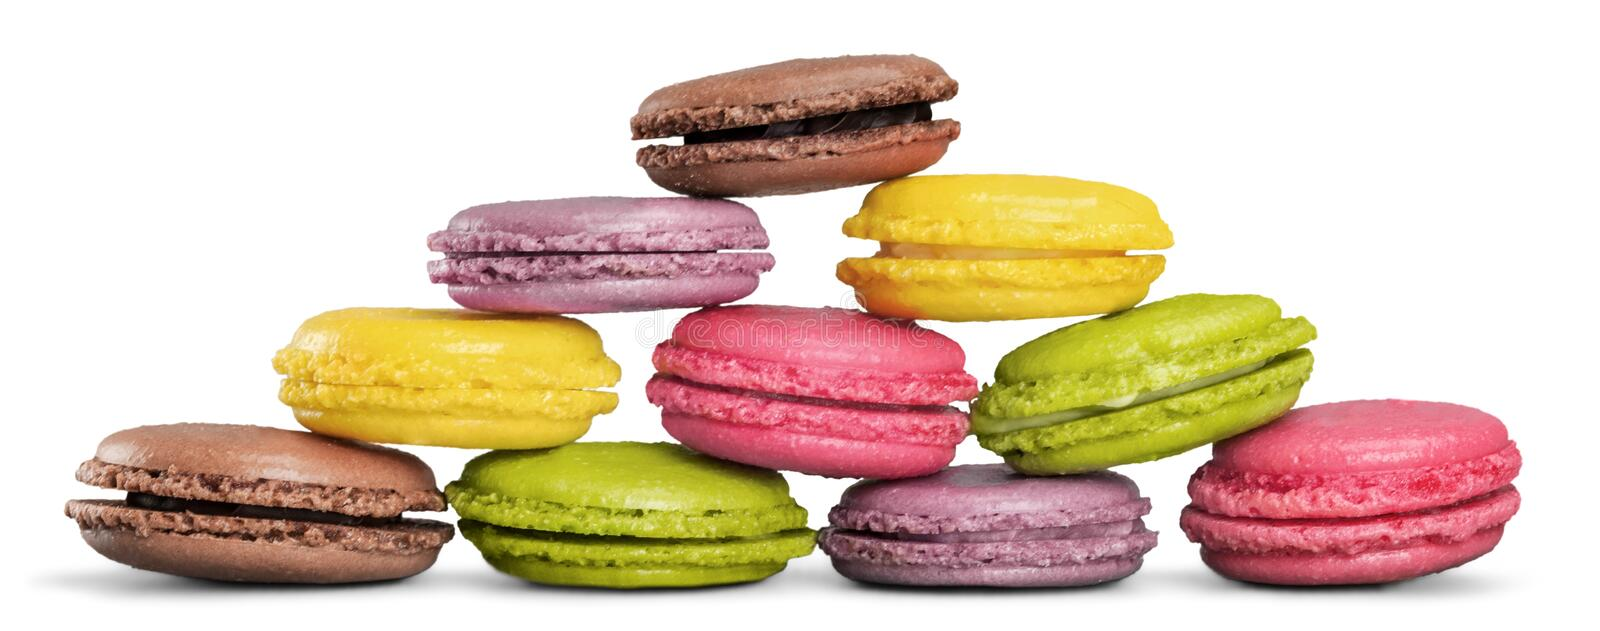 Pyramid of pastel macaroons on white background stock photography